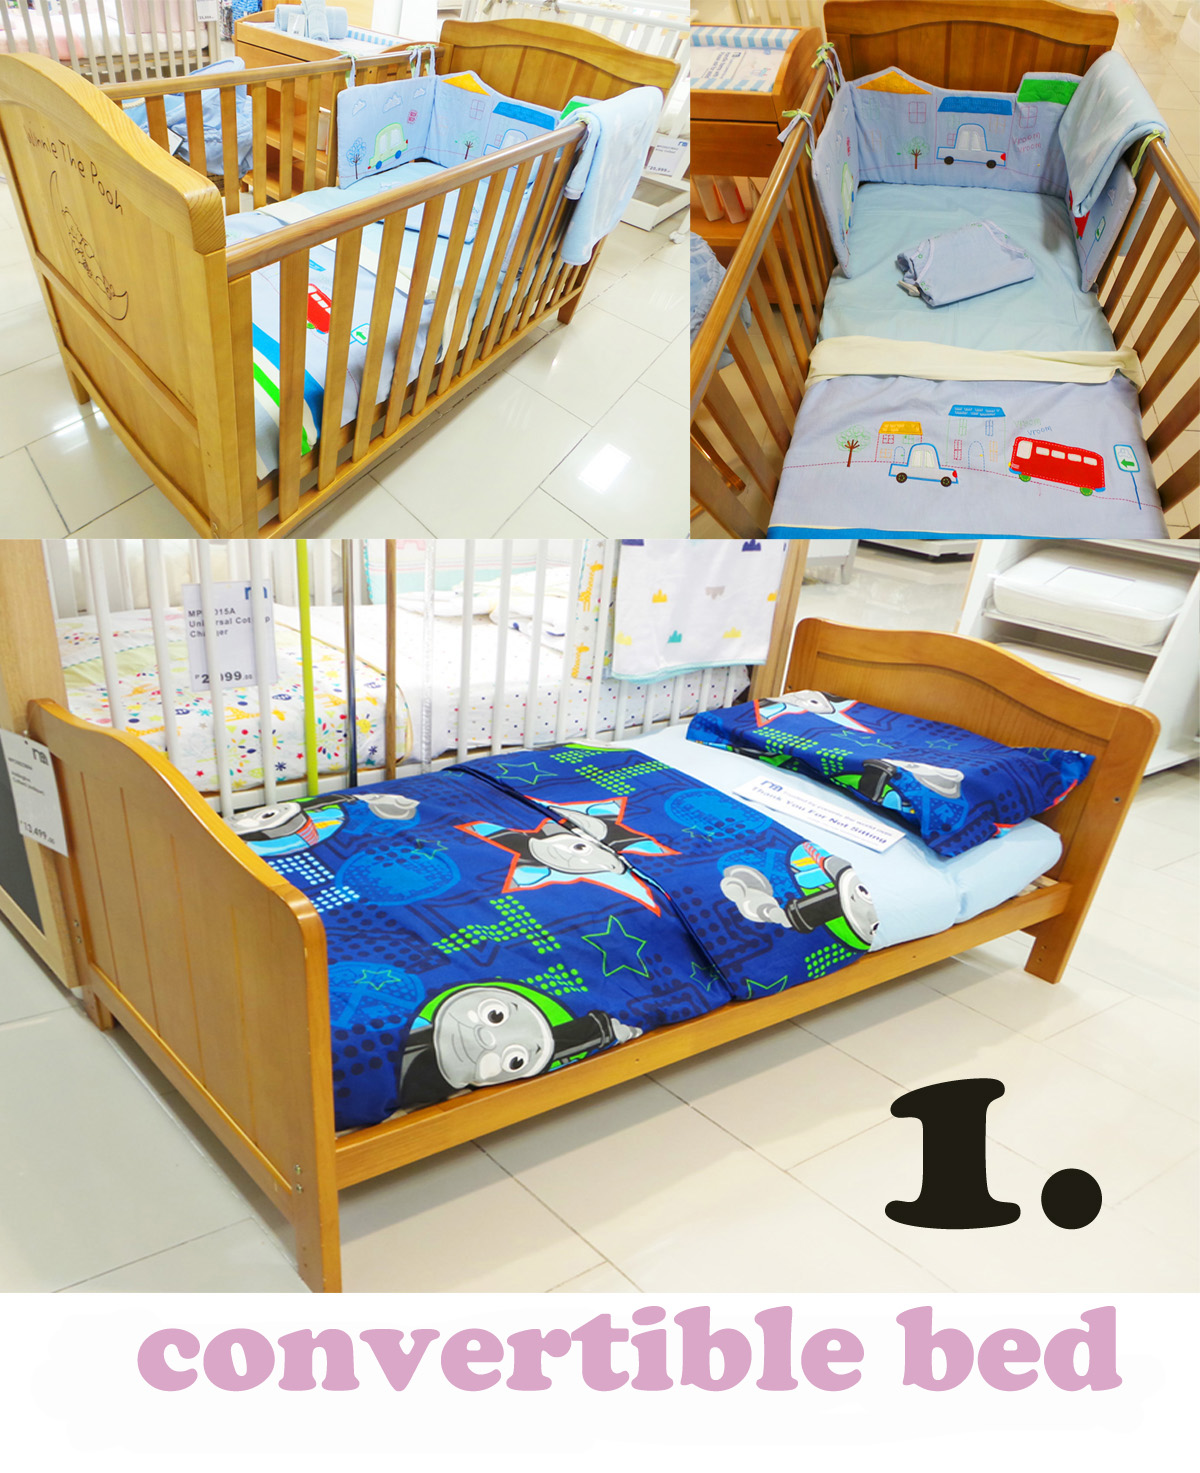 Crib for sale in cebu - Crib For Babies Philippines Baby Crib For Sale Online Philippines What A Smart Way To